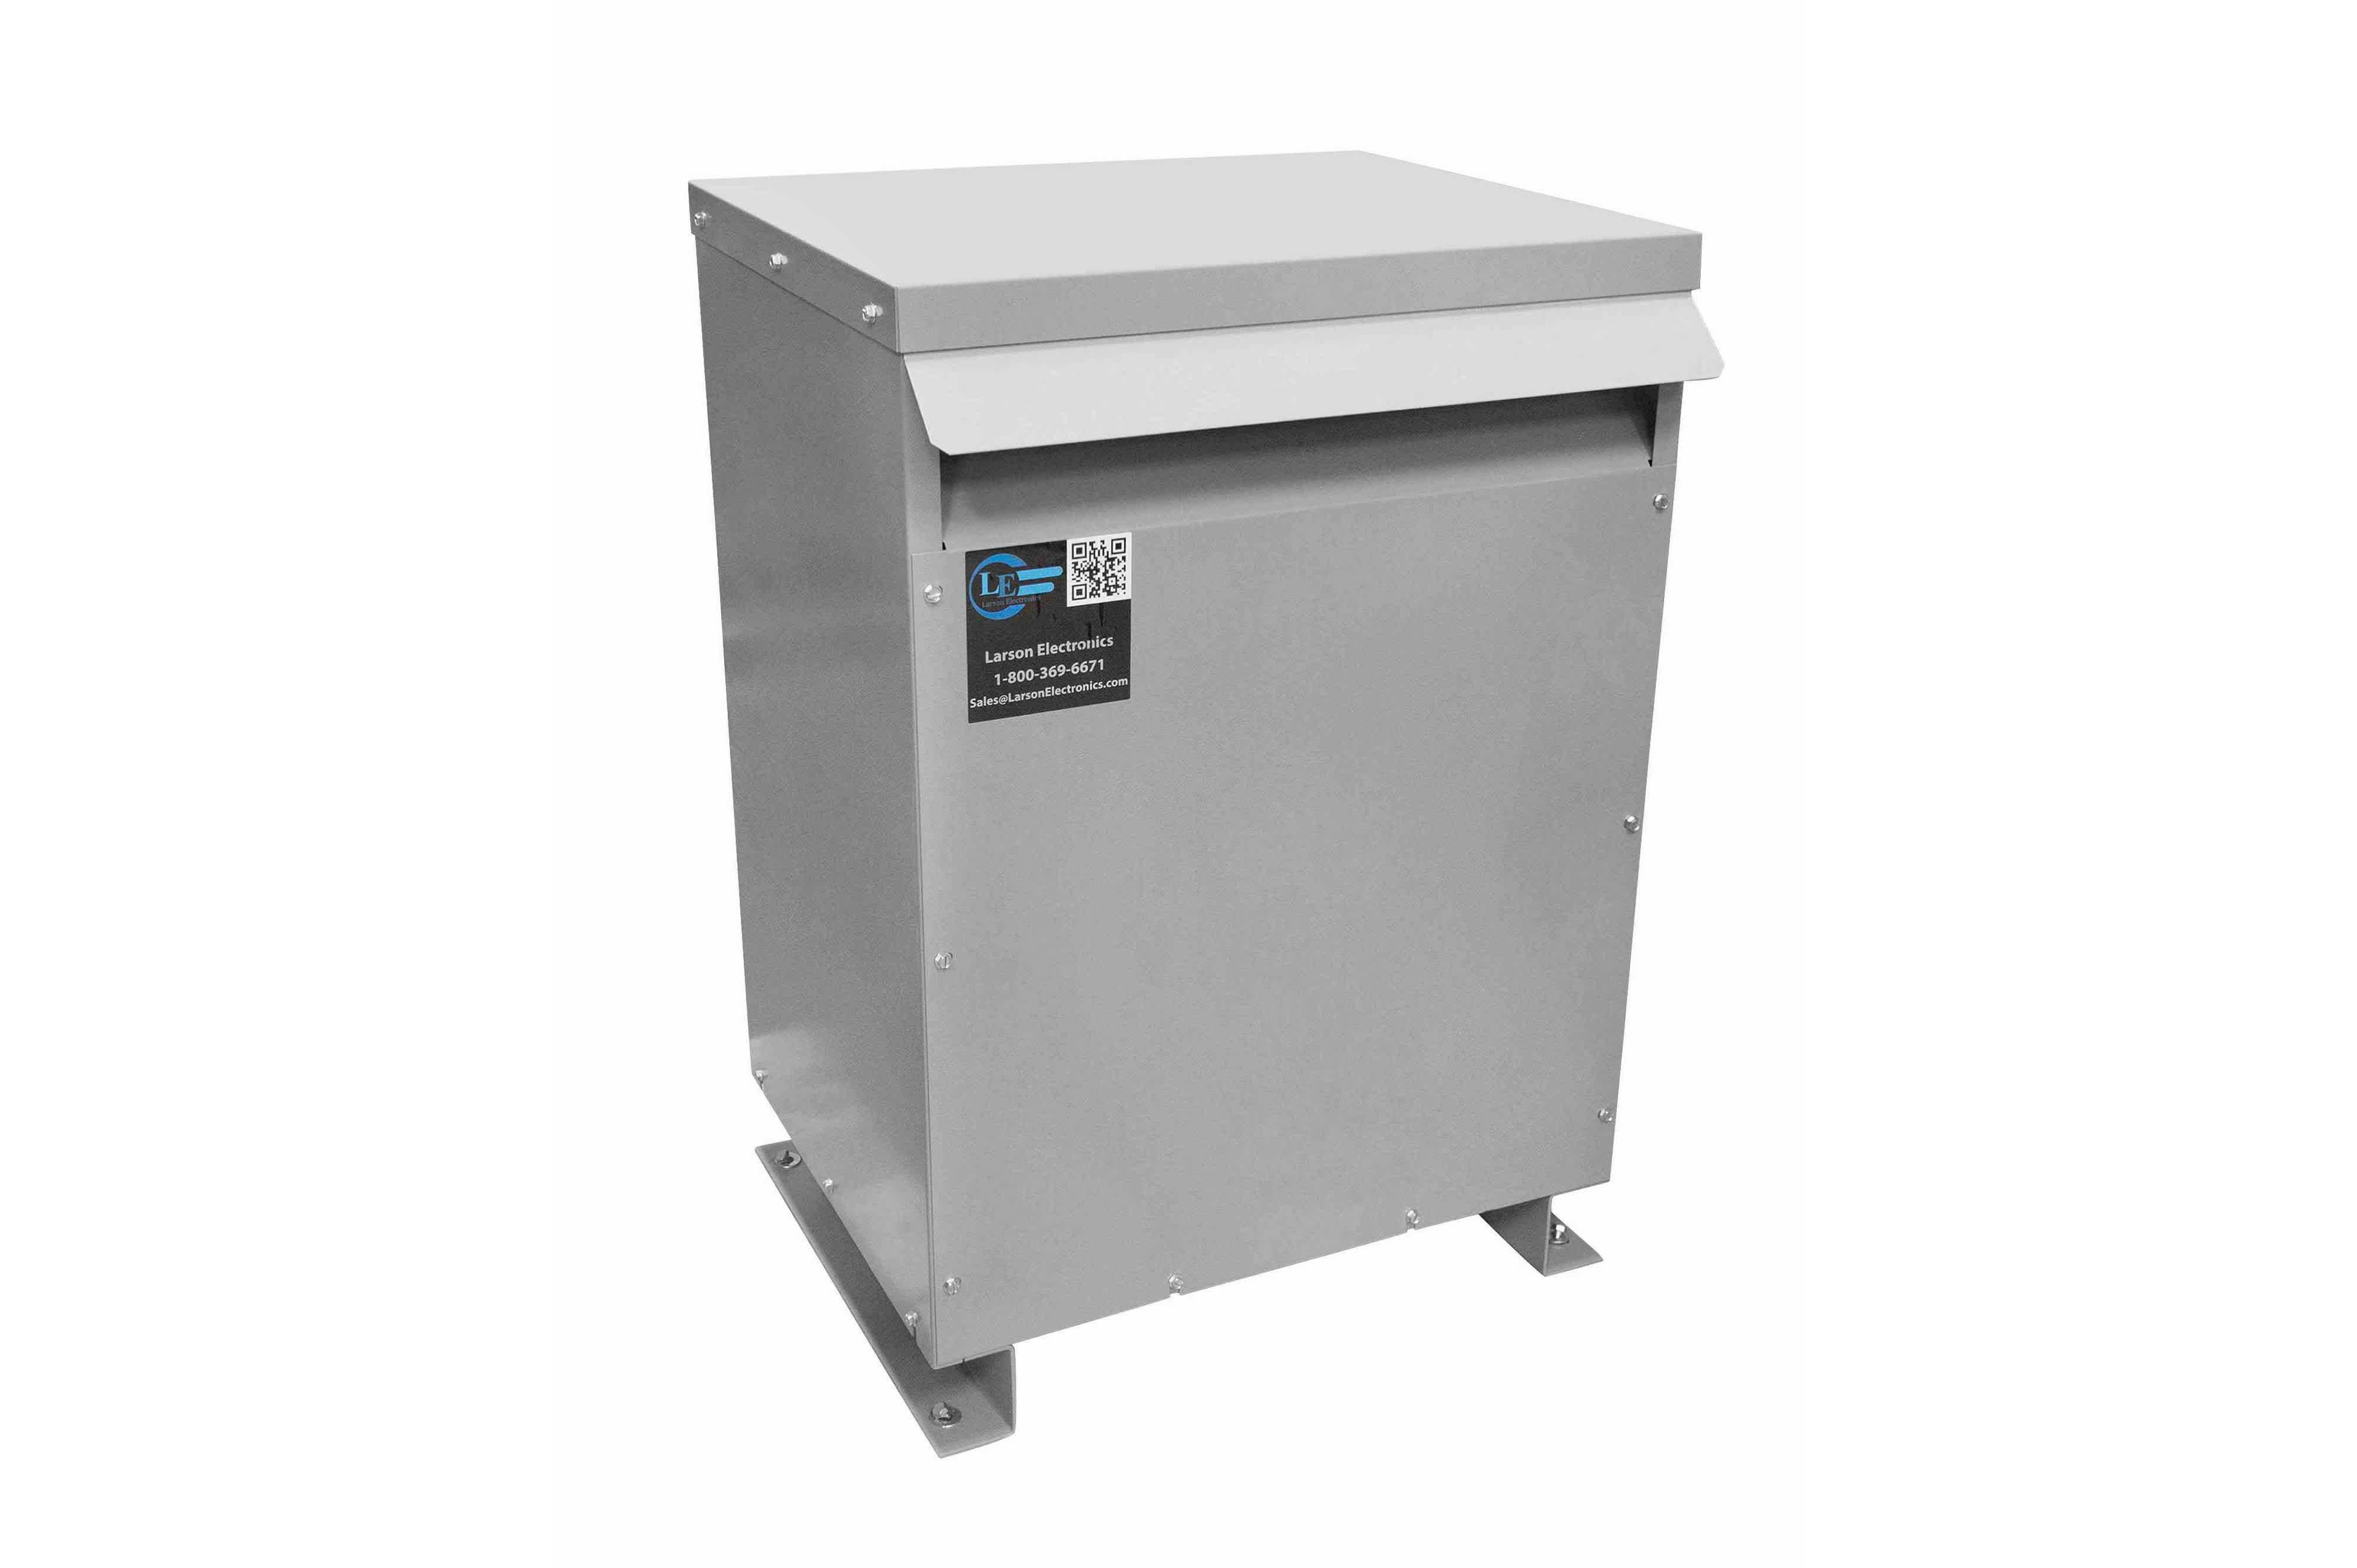 250 kVA 3PH DOE Transformer, 460V Delta Primary, 600Y/347 Wye-N Secondary, N3R, Ventilated, 60 Hz